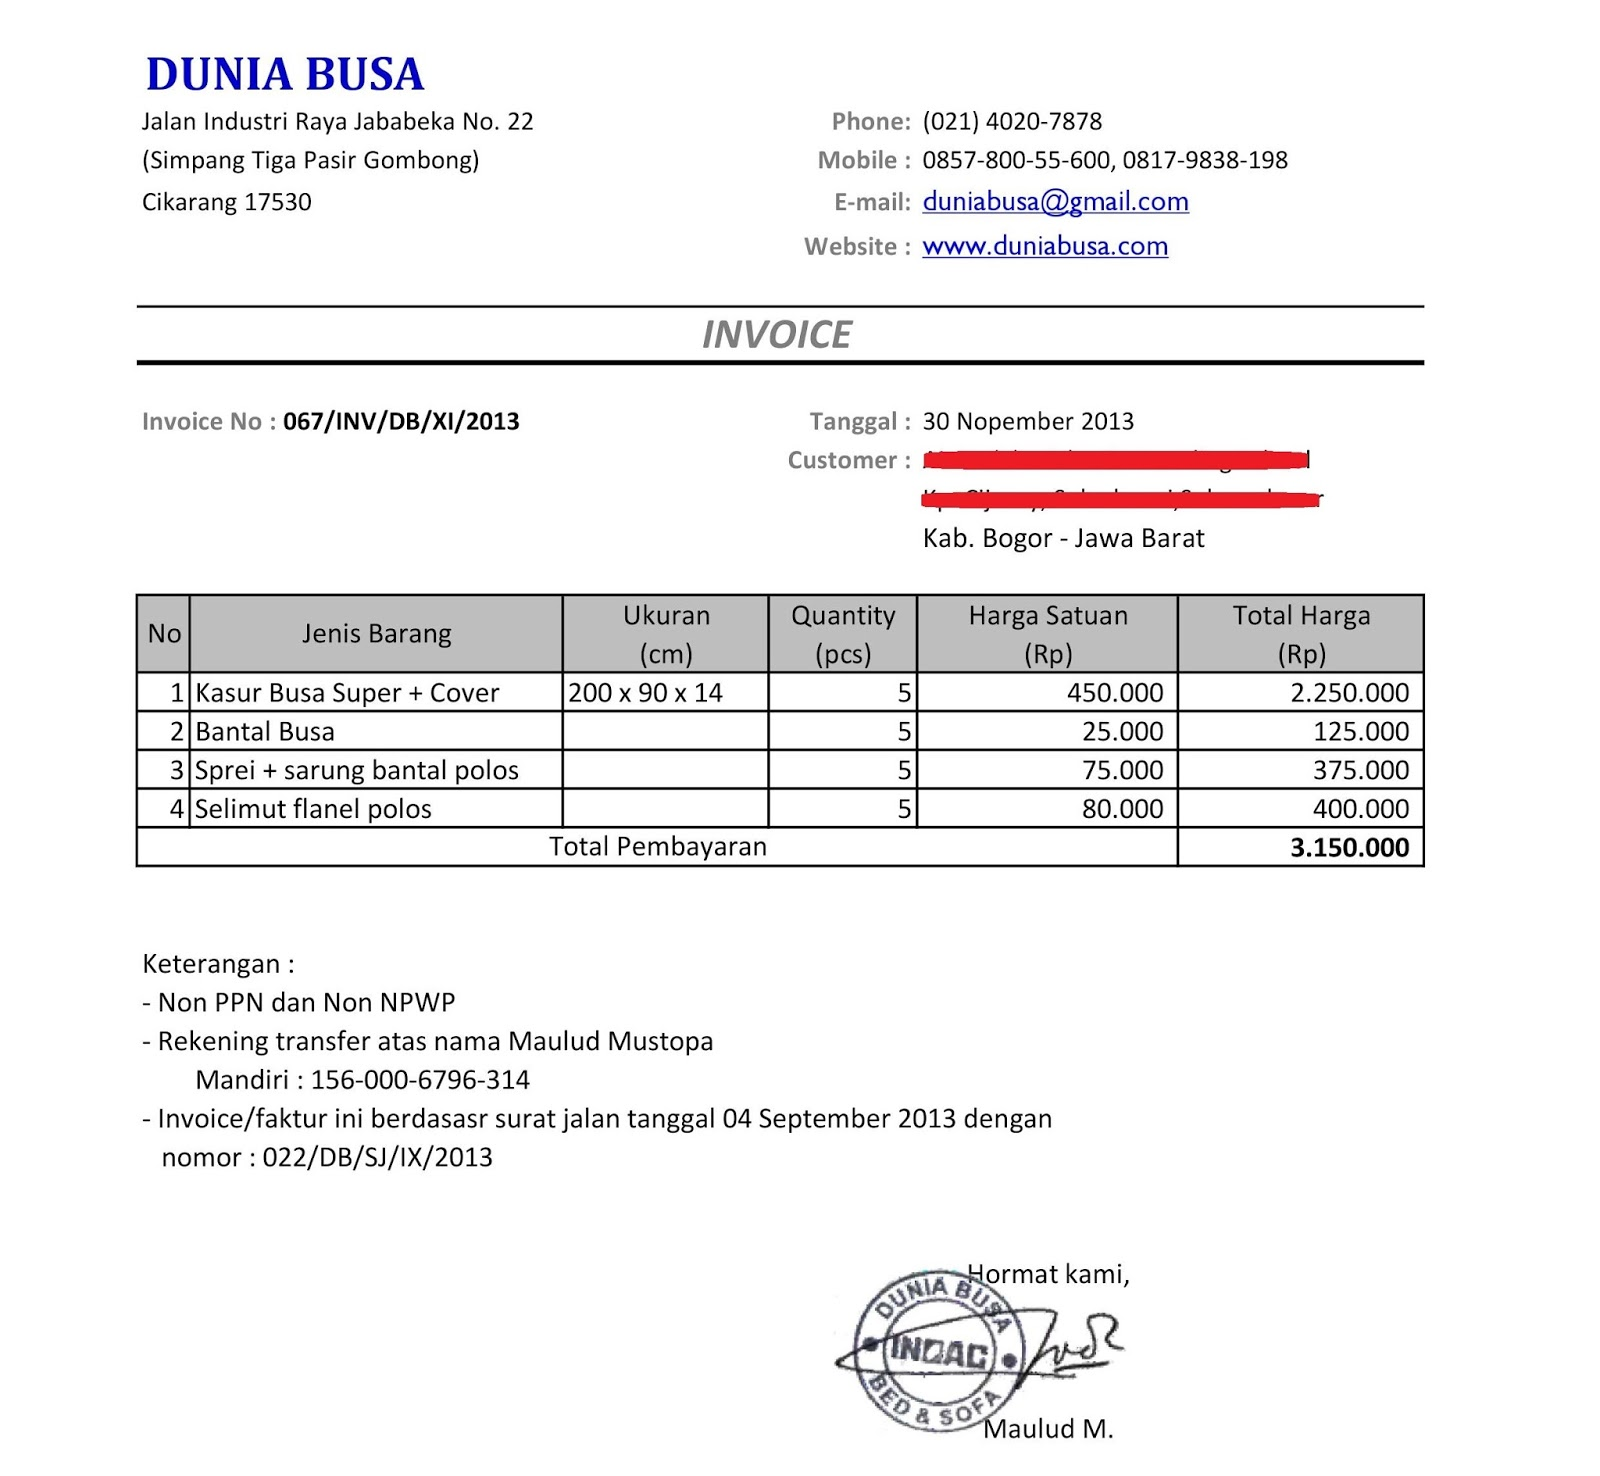 Ultrablogus  Nice Free Invoice Online  Create Invoice Online  Invoice Template  With Fair Contoh Format Invoice Atau Surat Tagihan  Brankas Arsip  Free Invoice Online With Alluring Commercial Invoice Template Dhl Also Cheap Invoicing Software In Addition Australian Tax Invoice And Cloud Invoice Software As Well As Invoice For Customs Purposes Only Additionally What Needs To Be On An Invoice From Sklepco With Ultrablogus  Fair Free Invoice Online  Create Invoice Online  Invoice Template  With Alluring Contoh Format Invoice Atau Surat Tagihan  Brankas Arsip  Free Invoice Online And Nice Commercial Invoice Template Dhl Also Cheap Invoicing Software In Addition Australian Tax Invoice From Sklepco